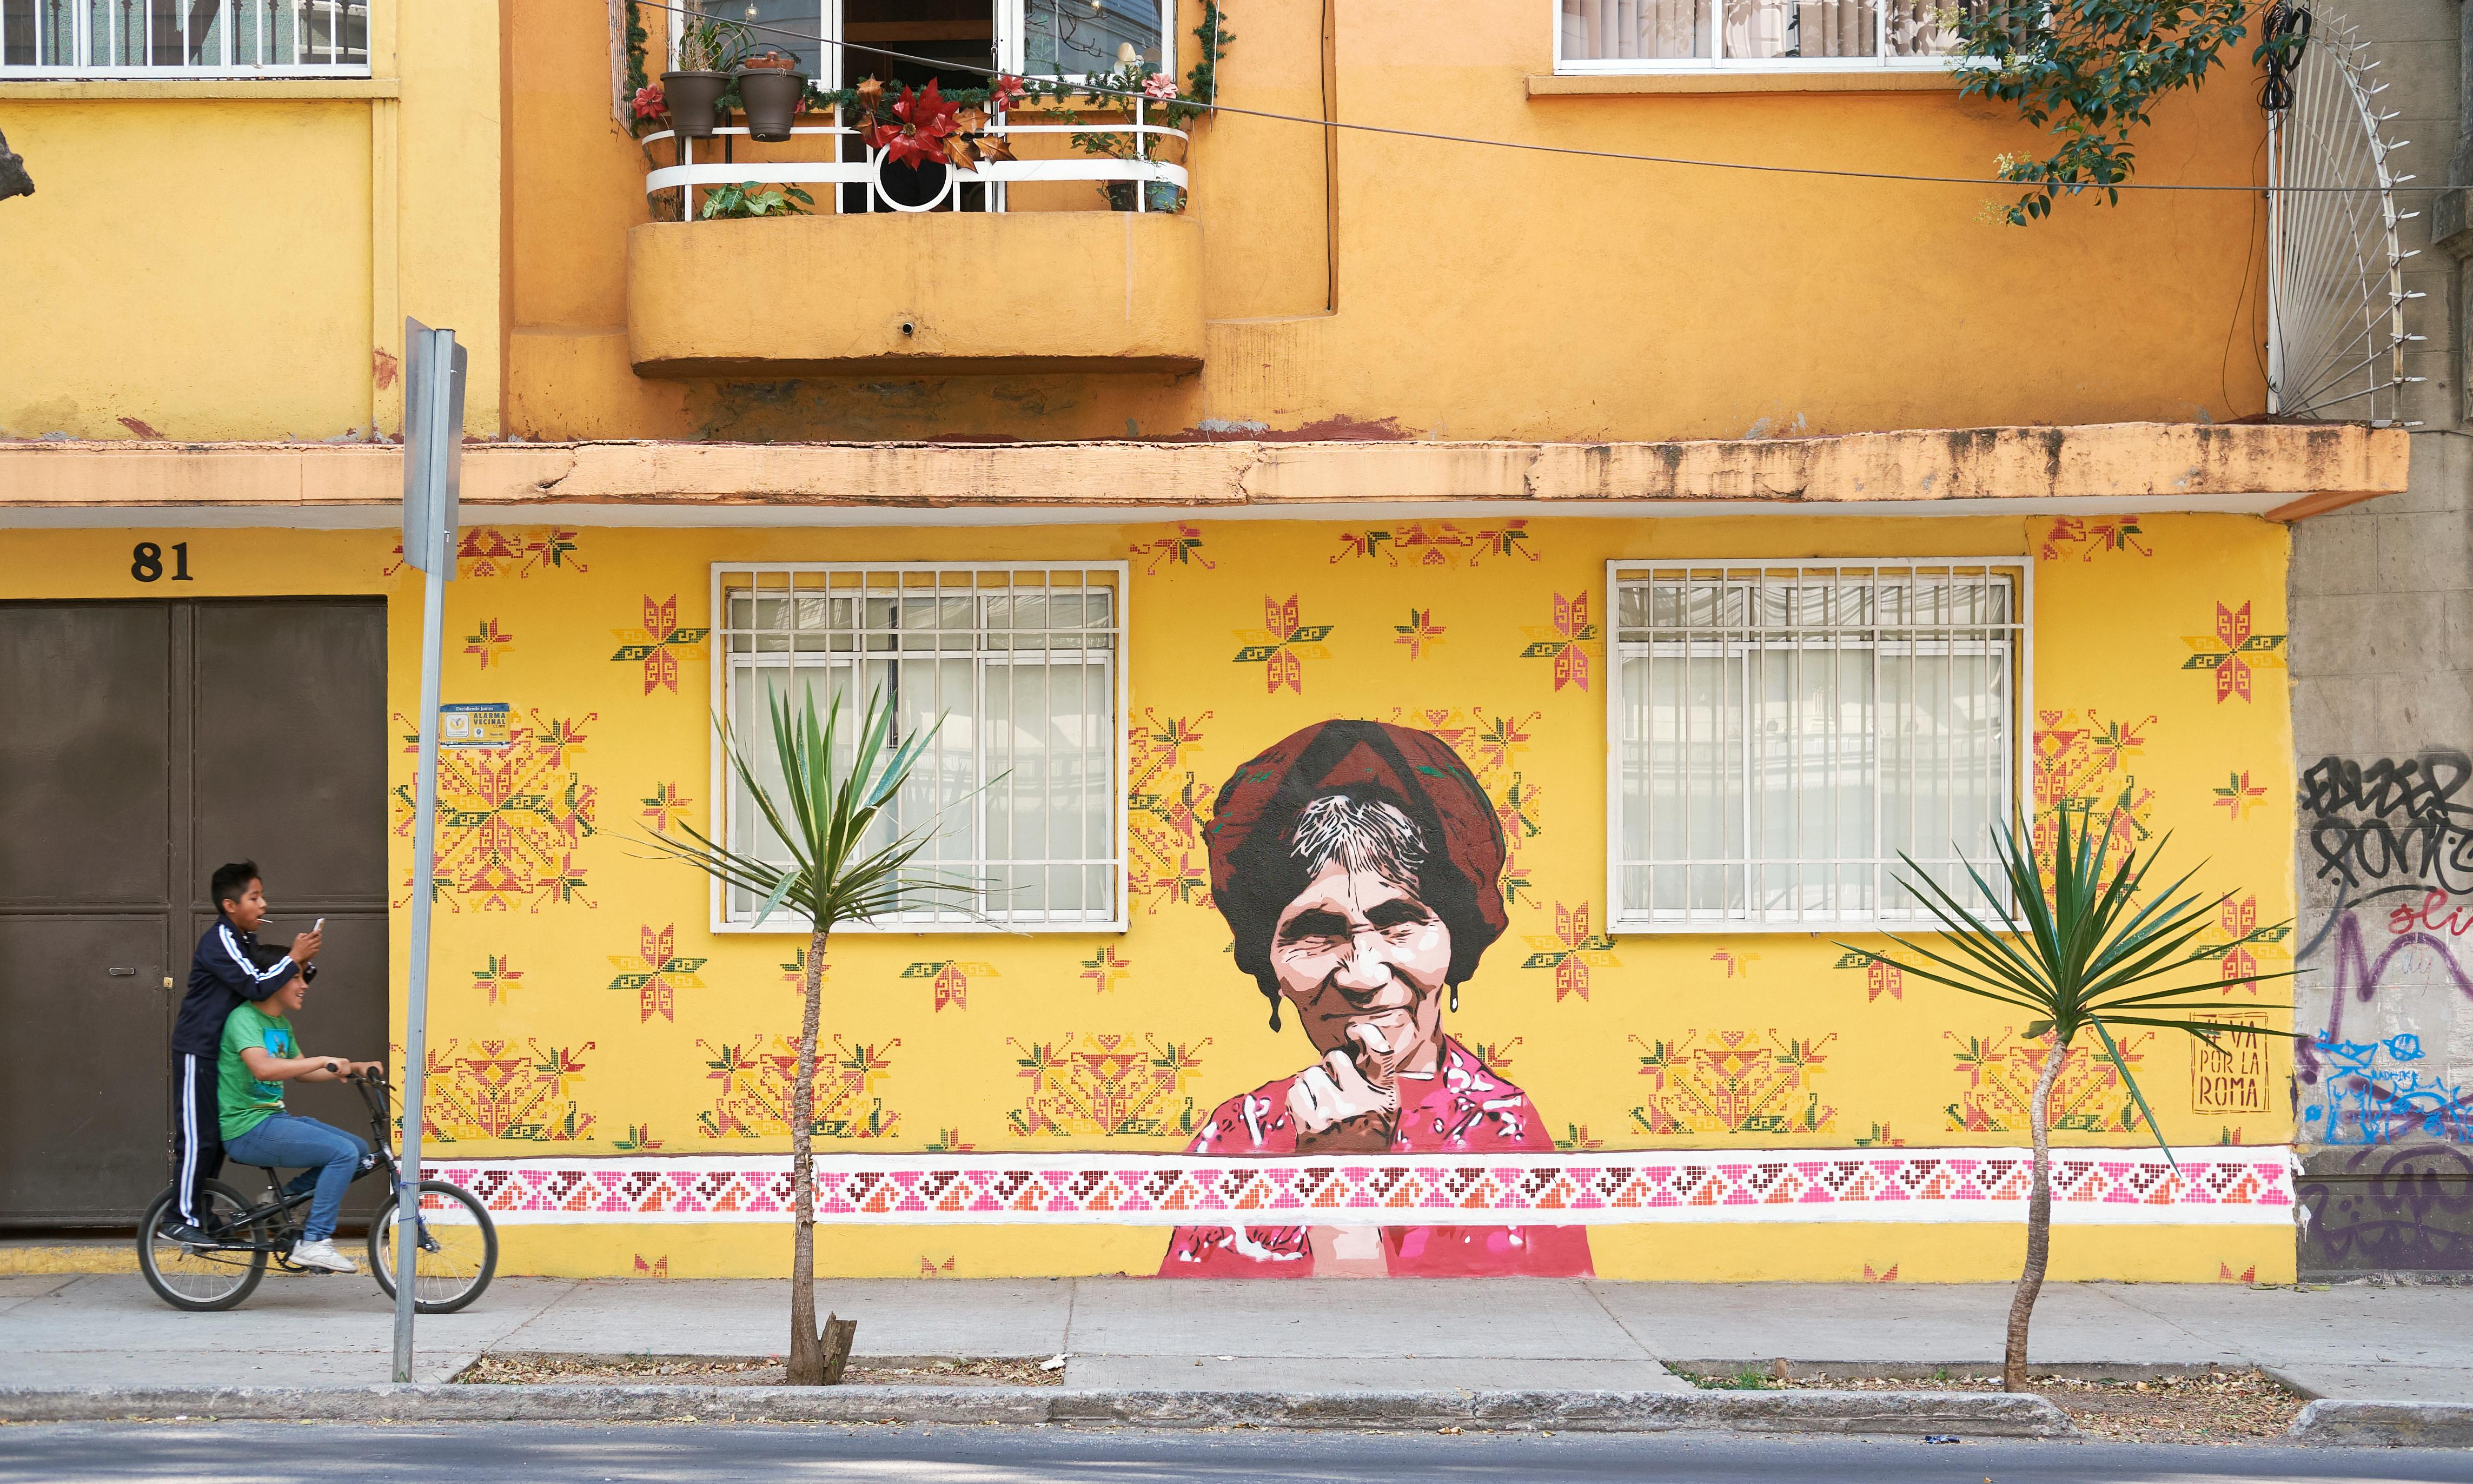 A local's guide to Mexico City: 10 tips